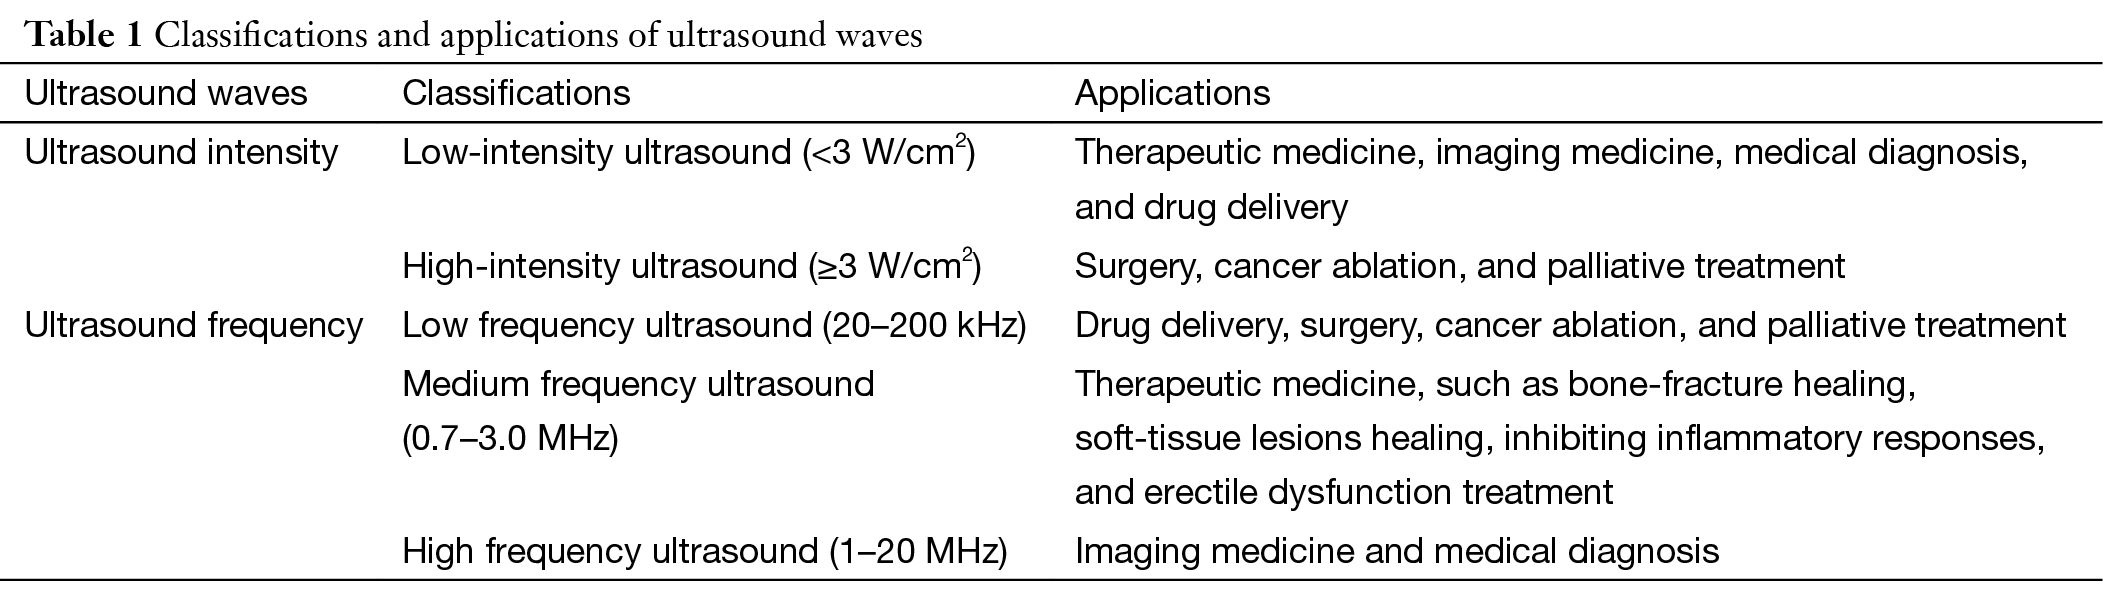 Clinical applications of low-intensity pulsed ultrasound and